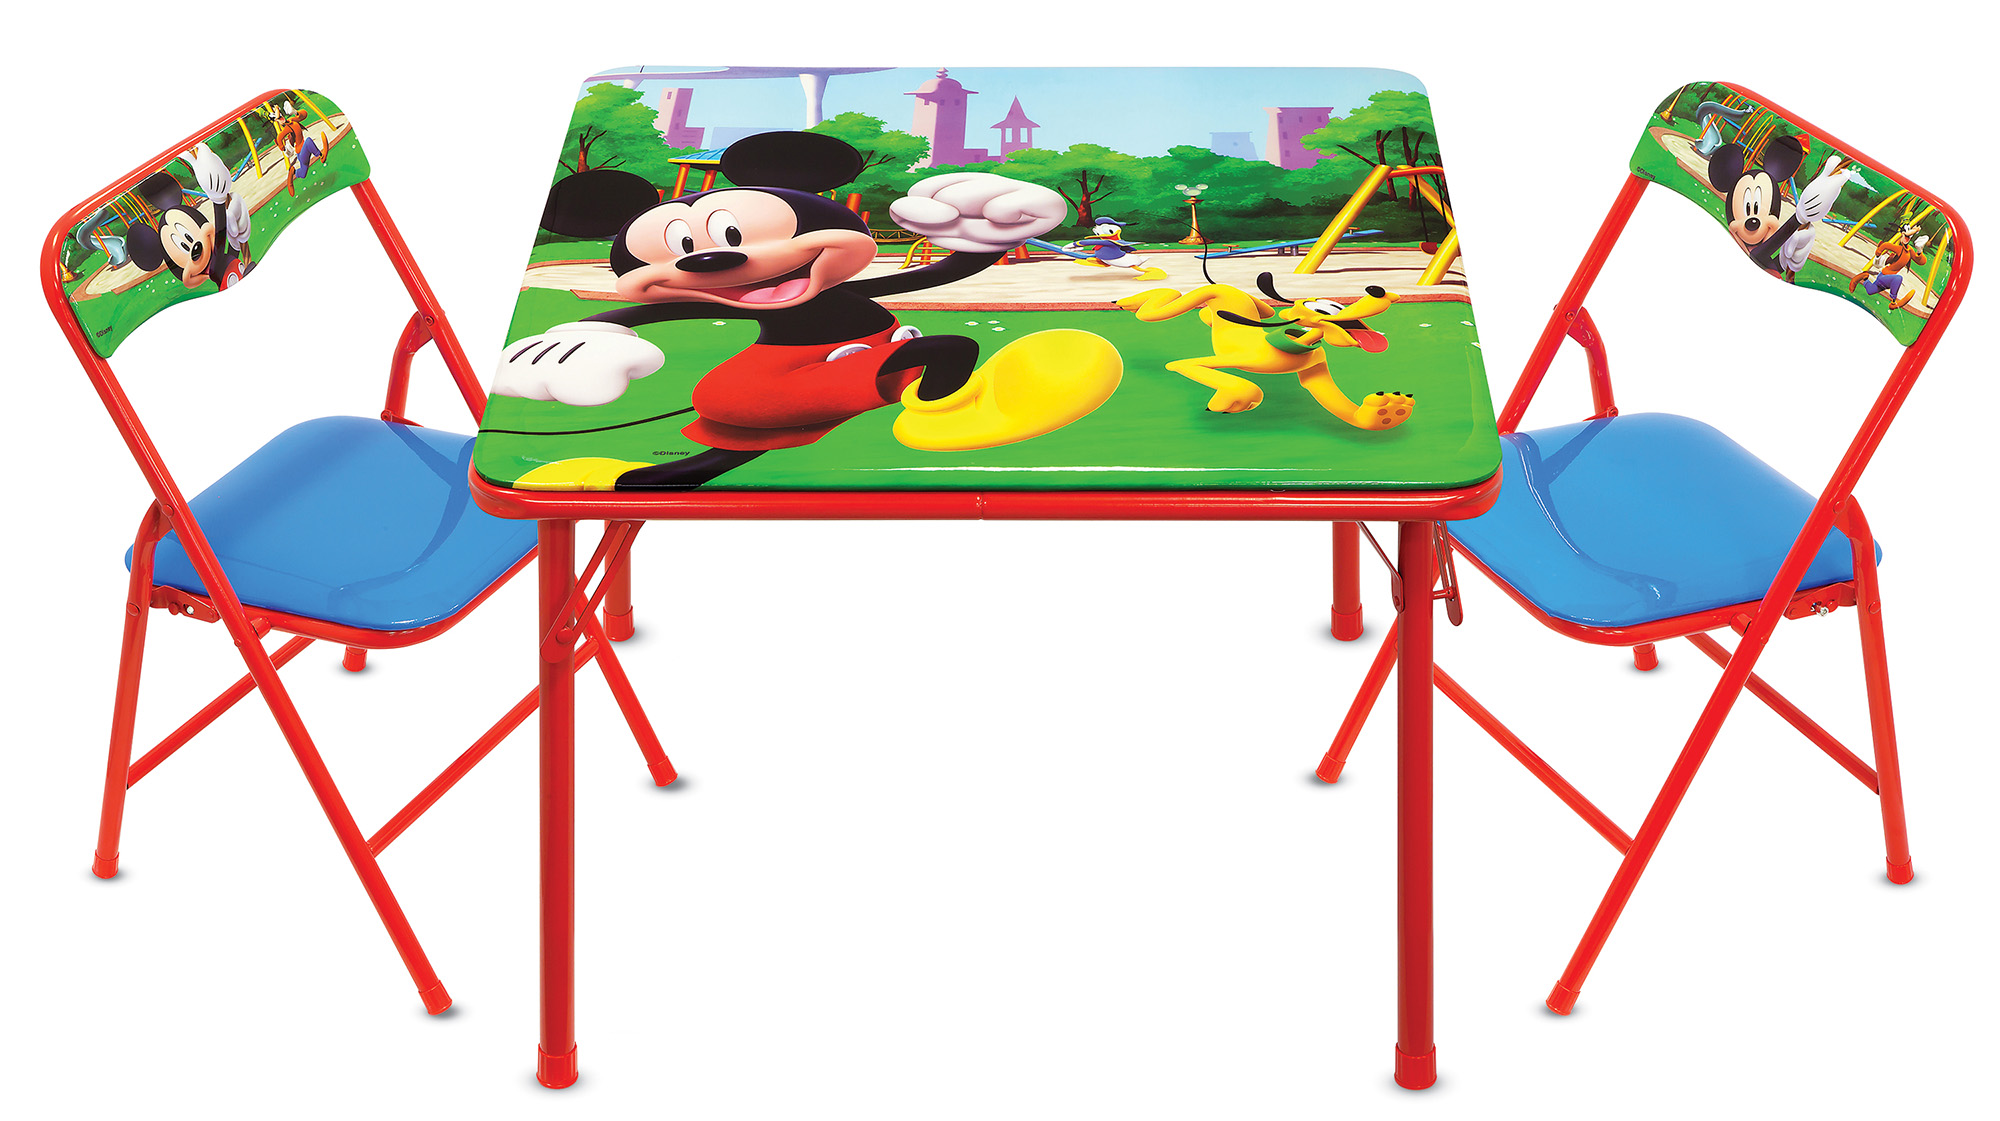 Disney Mickey Mouse Erasable Activity Table and Chairs Playset